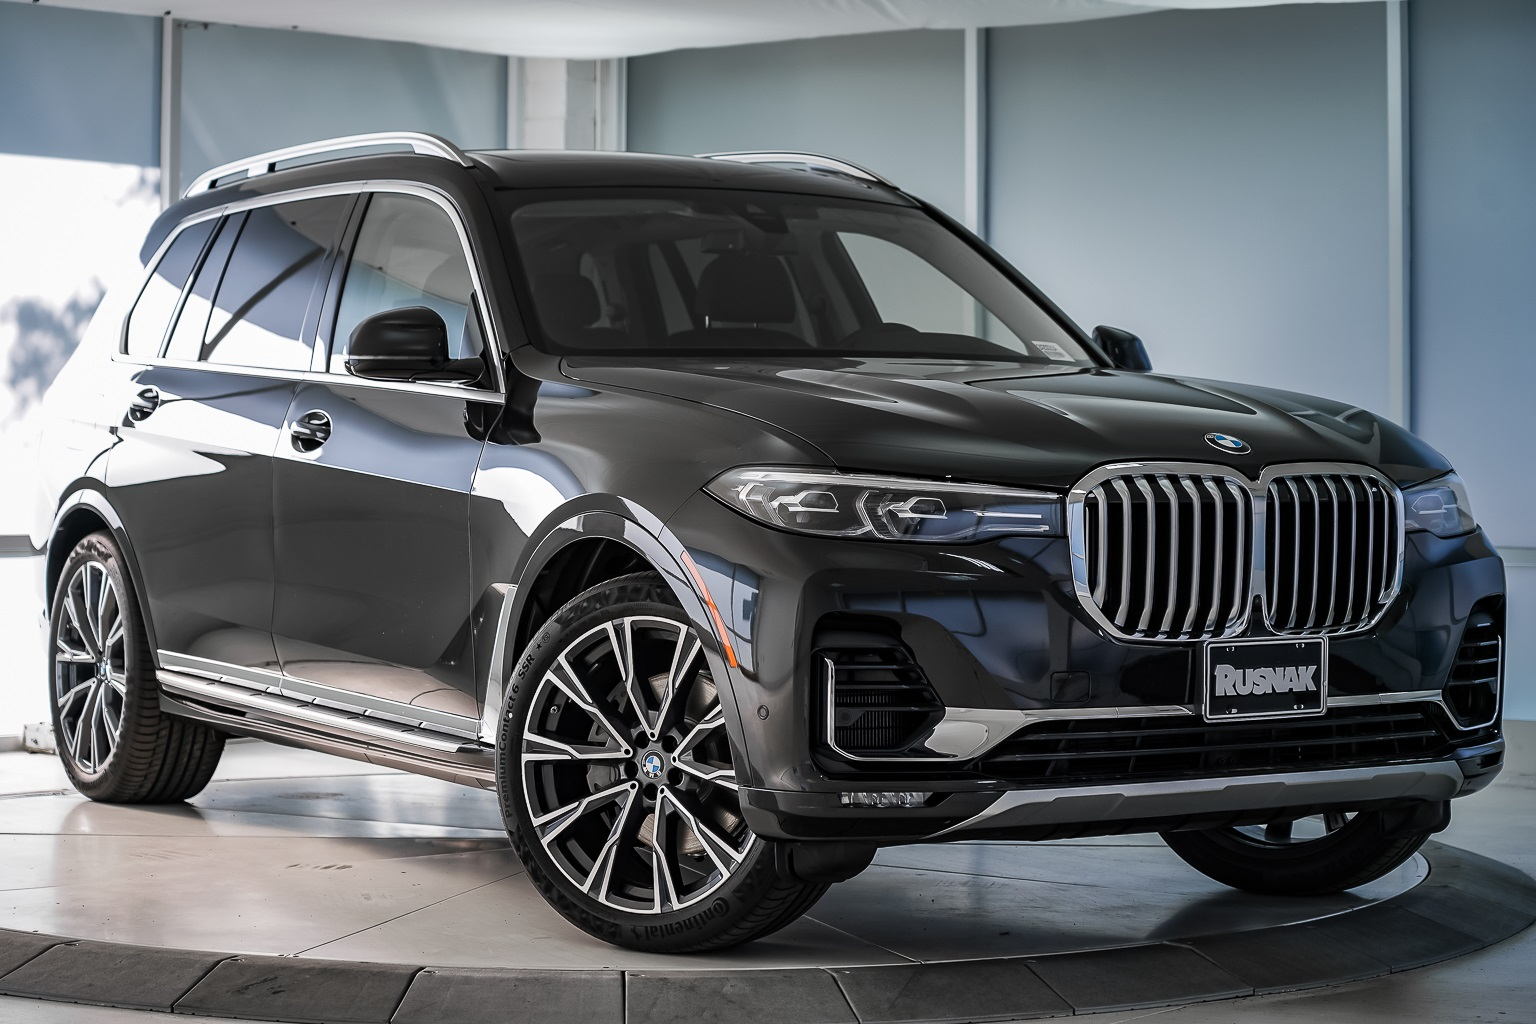 New 2020 BMW X7 xDrive50i